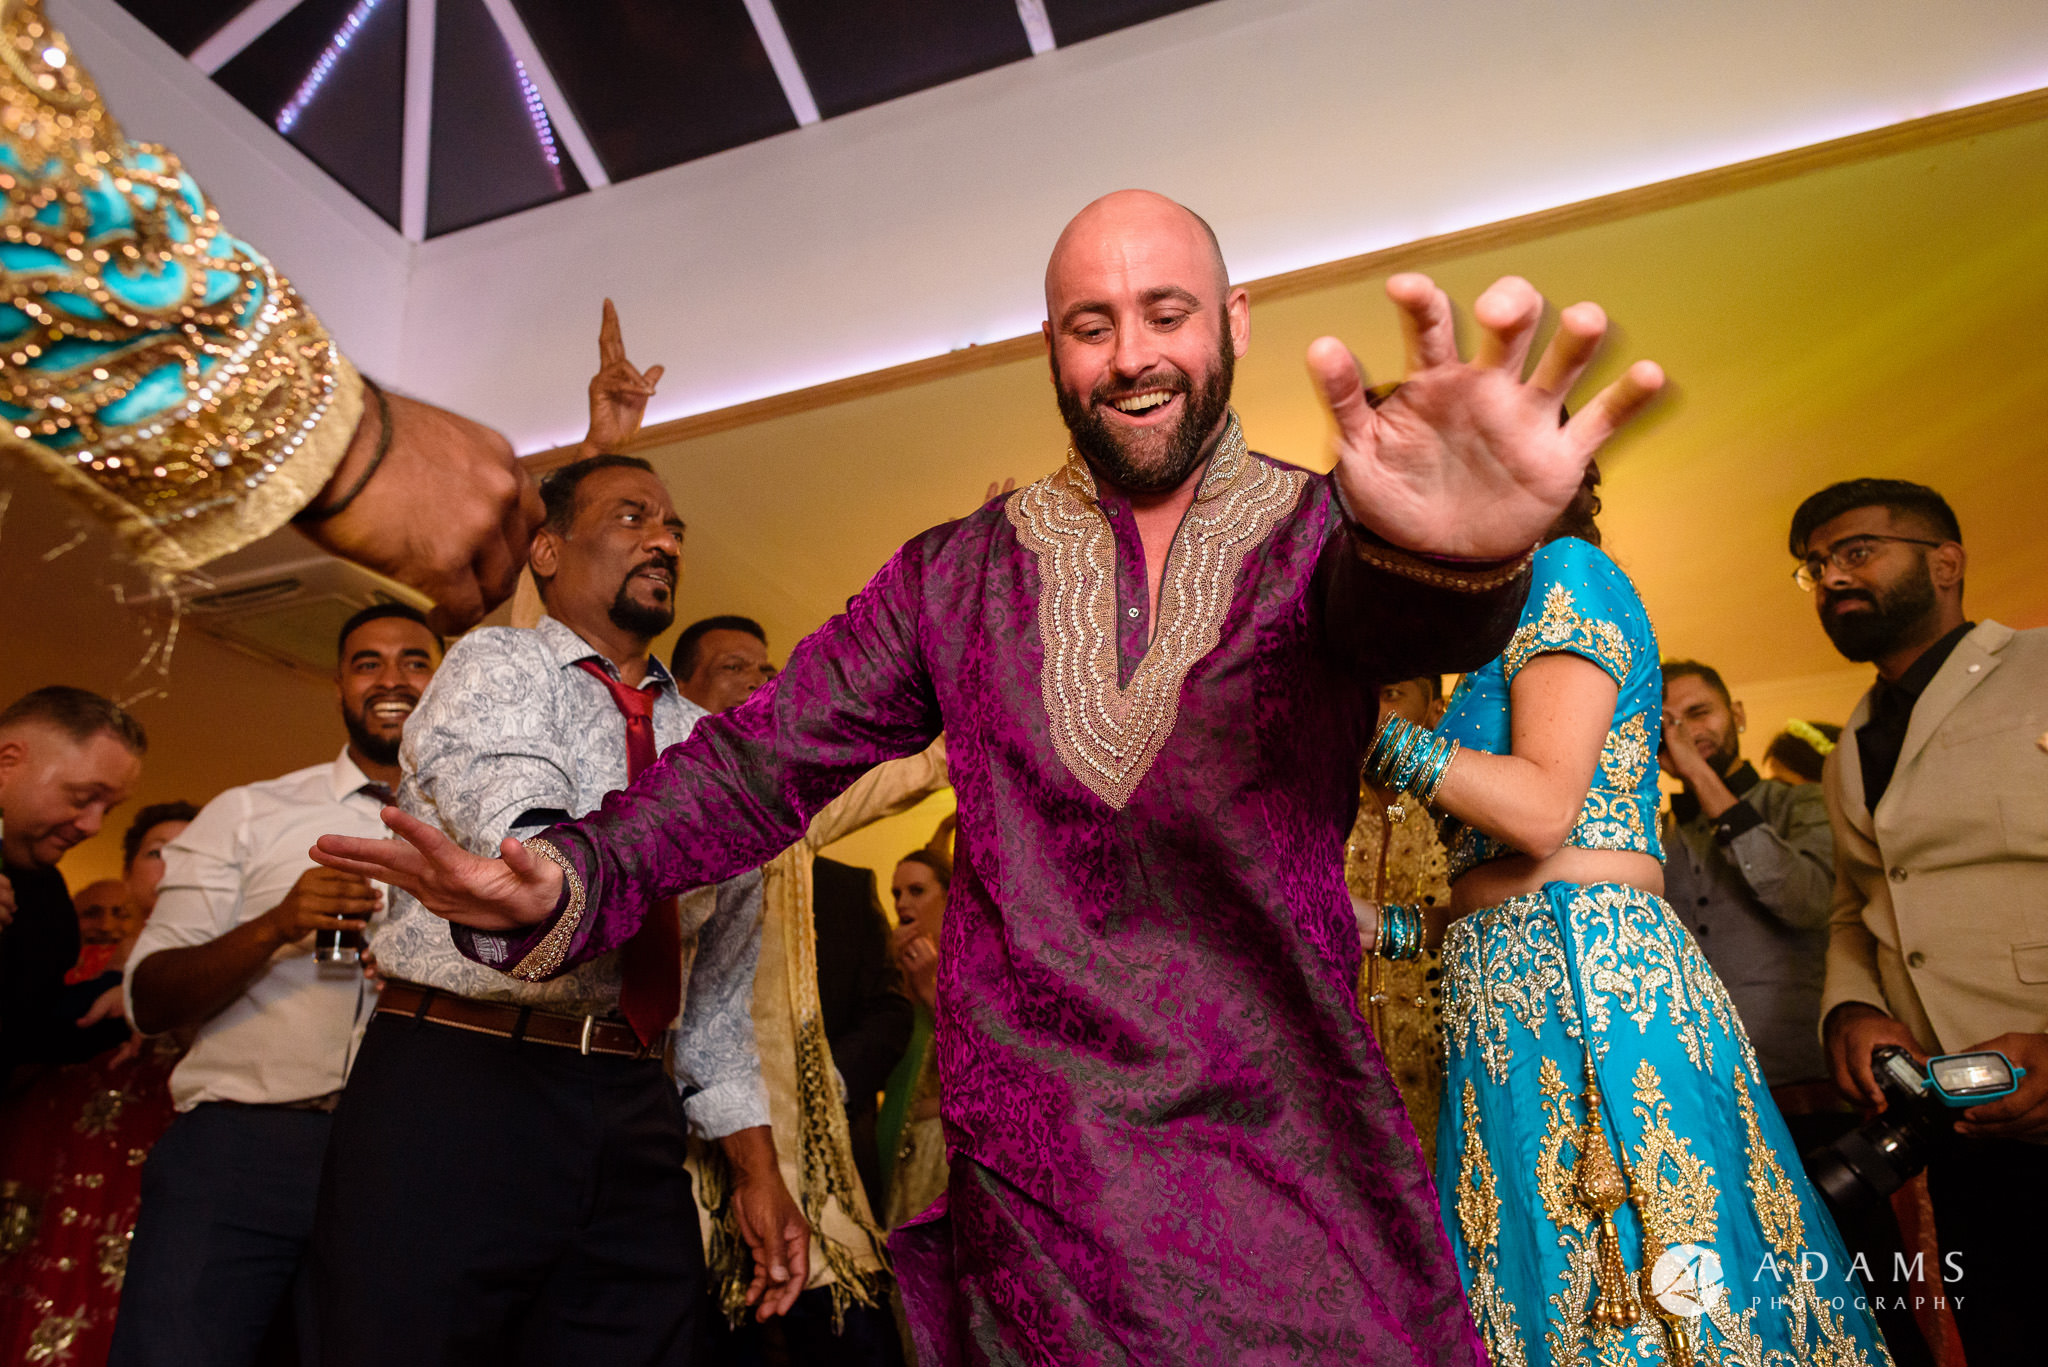 walled garden orchardleigh wedding photography dancing moves